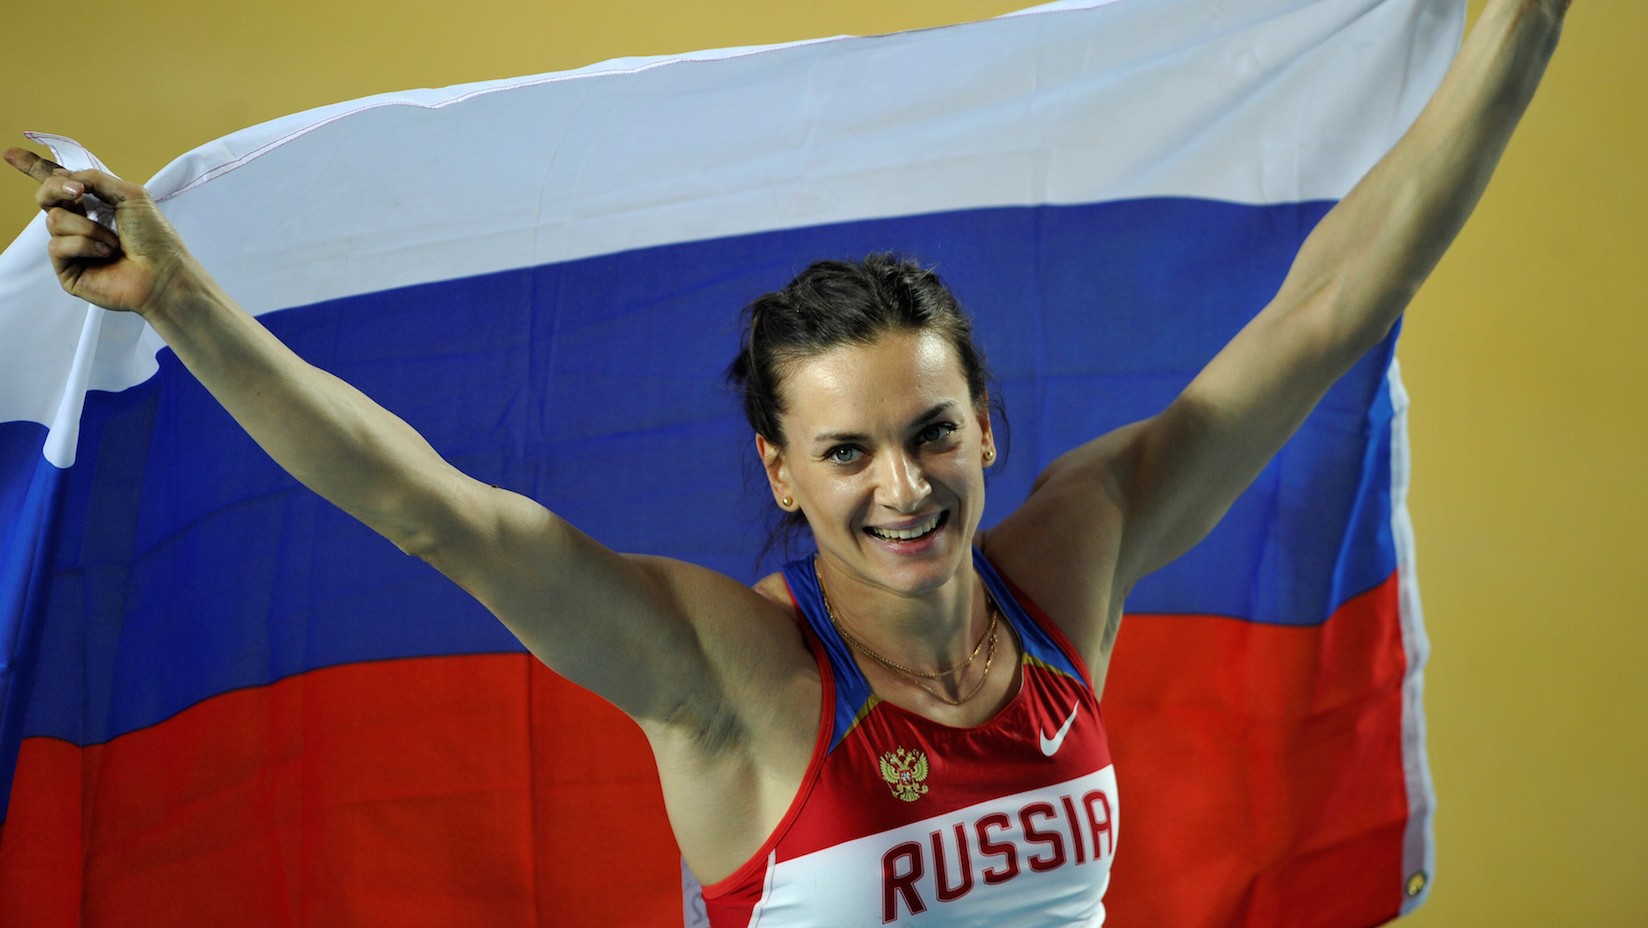 Russia's doping-ban appeal ahead of Rio Olympics got shut down